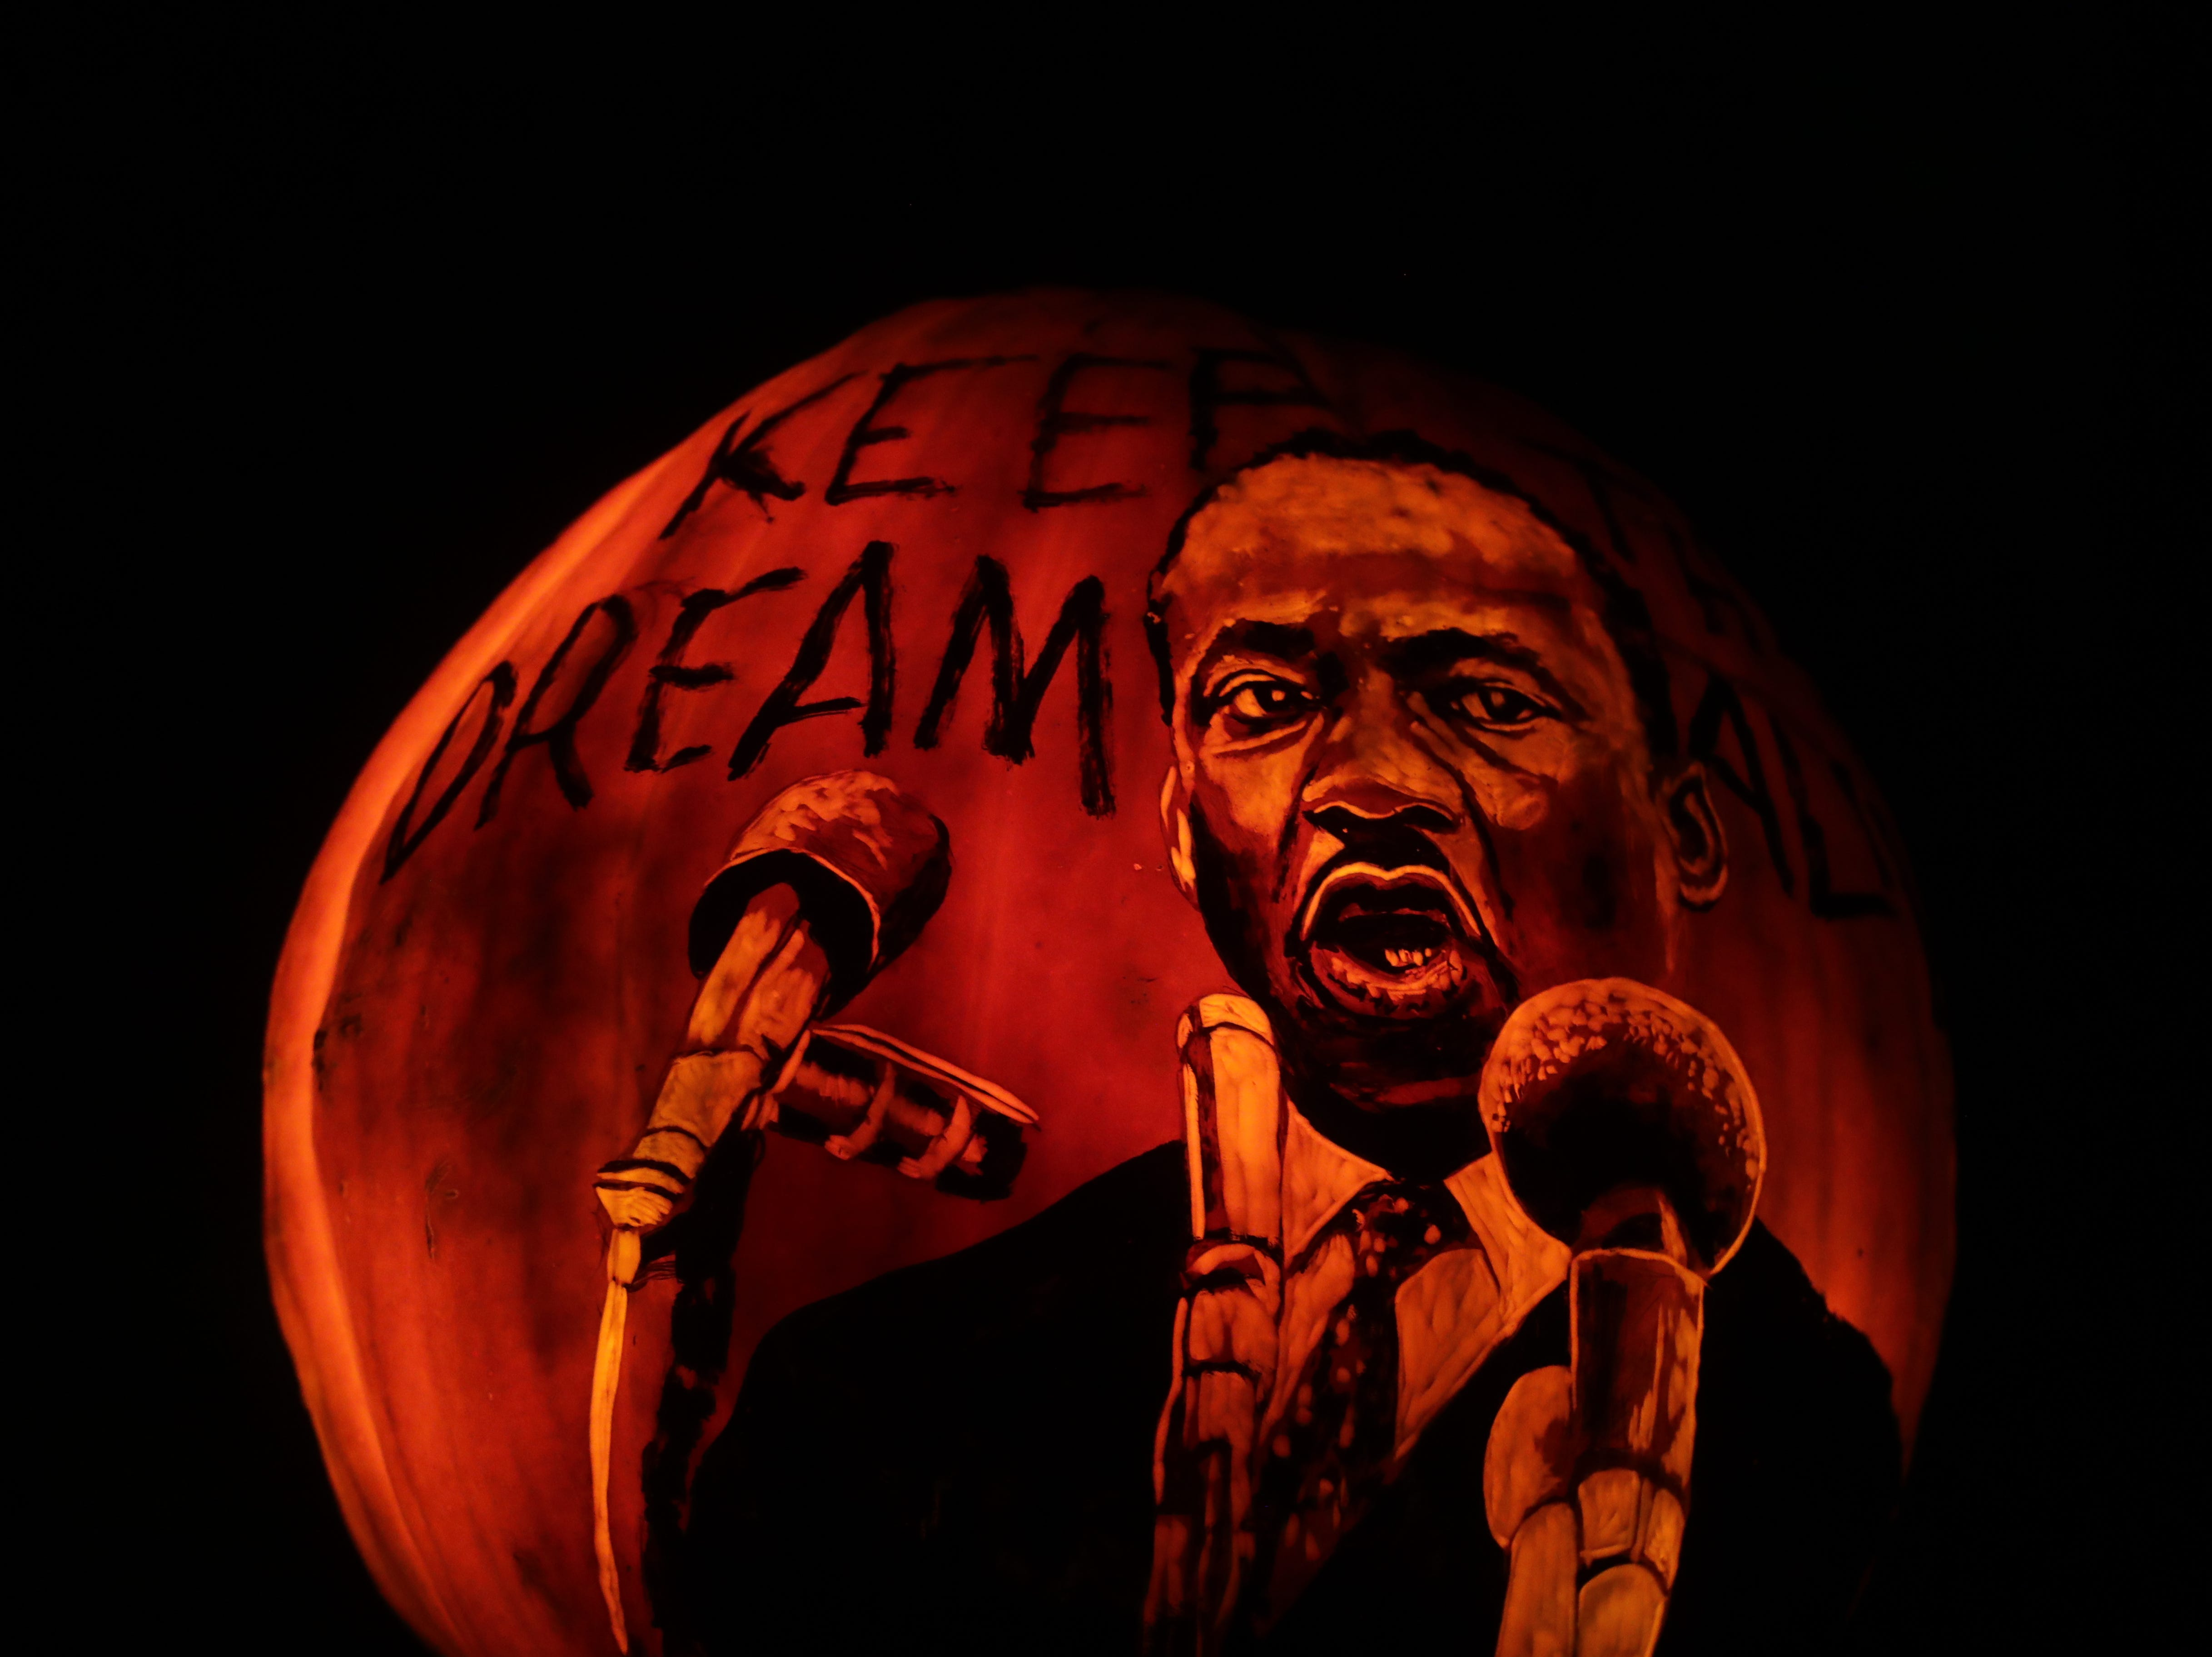 MLK Jr. appears on a pumpkin at this year's Jack O' Lantern Spectacular. Oct. 9, 2018